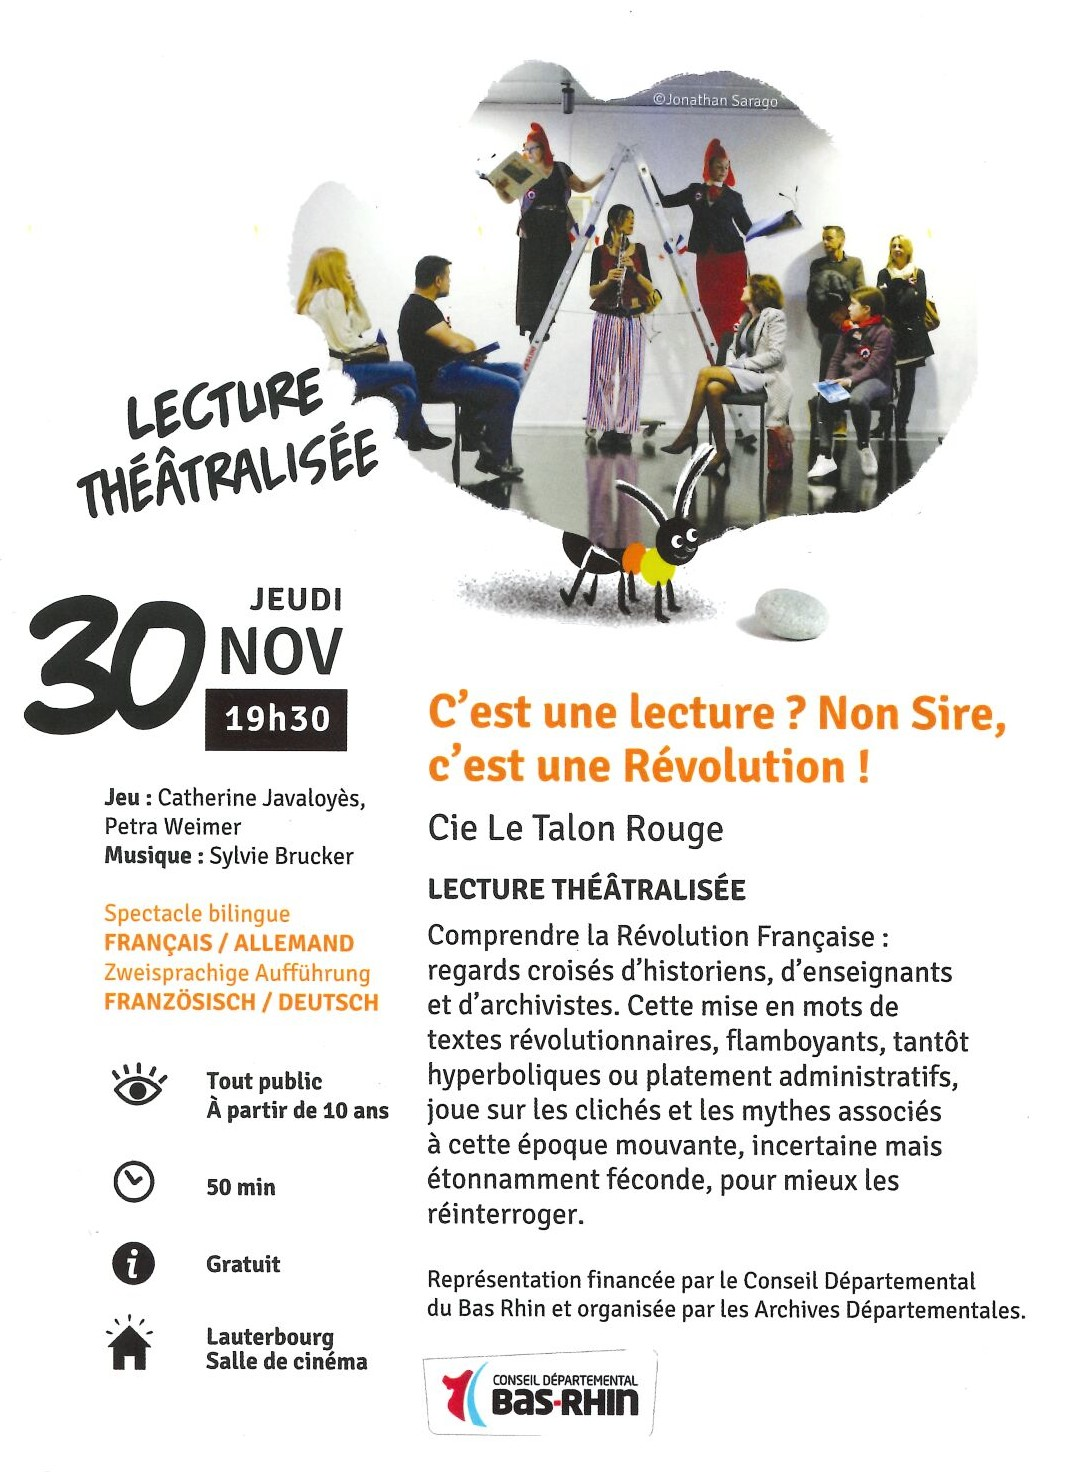 lecture-theatralisee